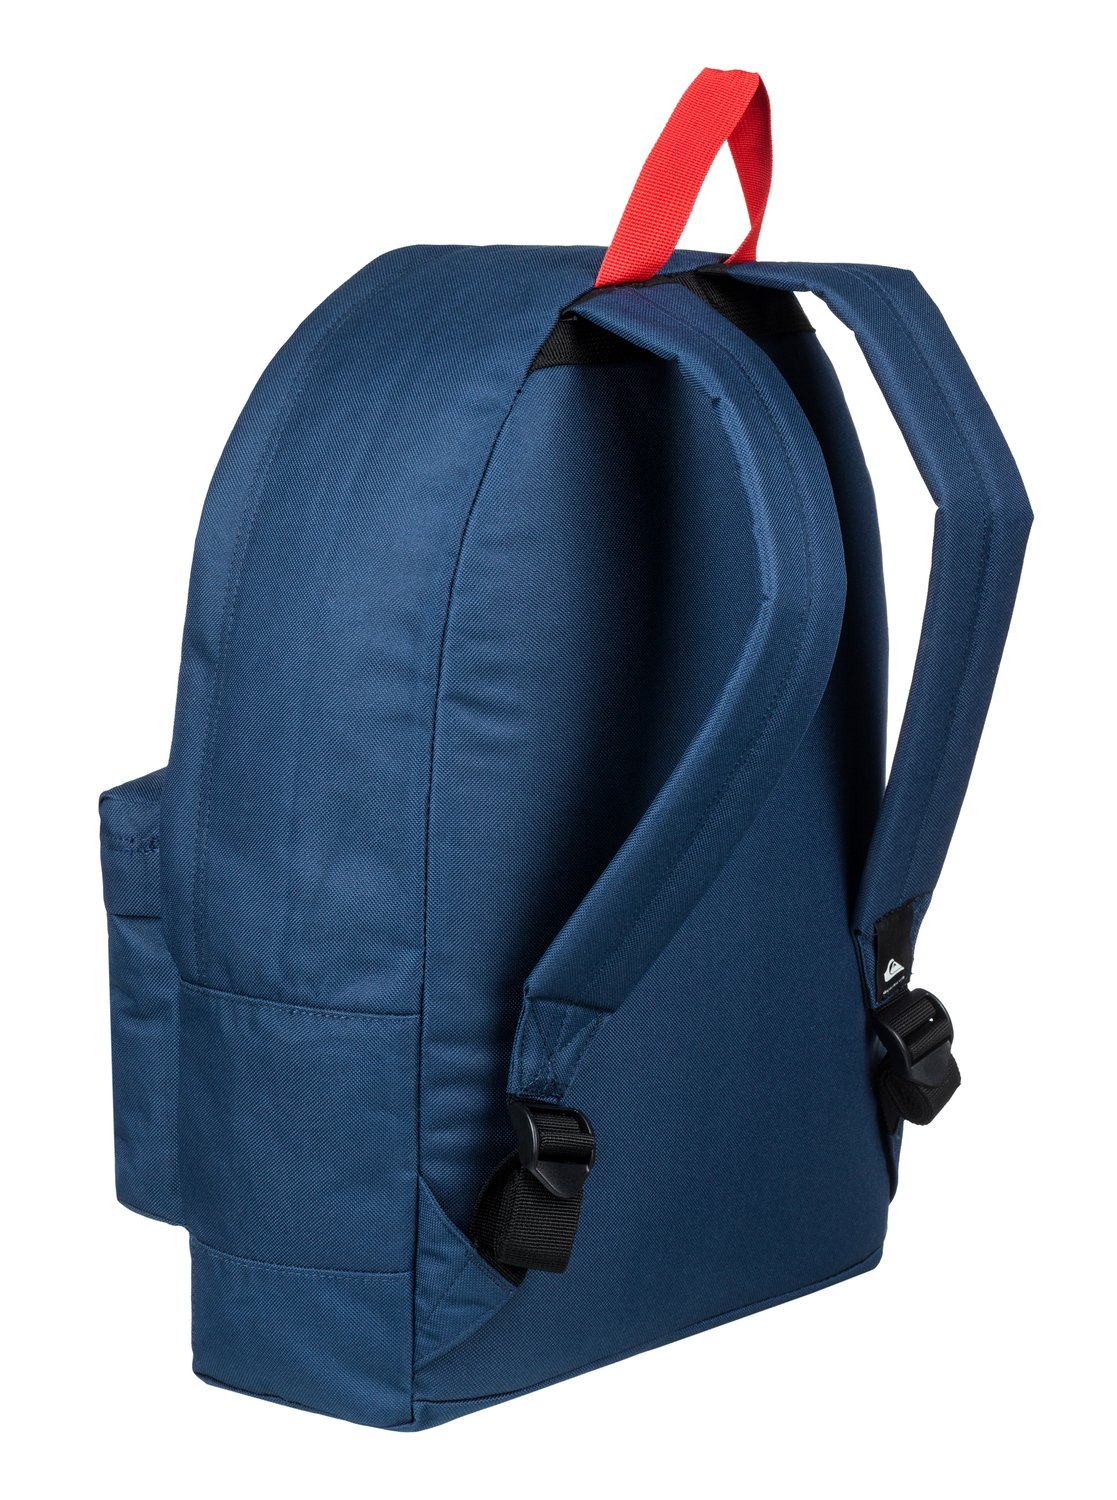 Quiksilver-Everyday-Poster-25L-Sac-a-dos-taille-moyenne-Homme miniature 7